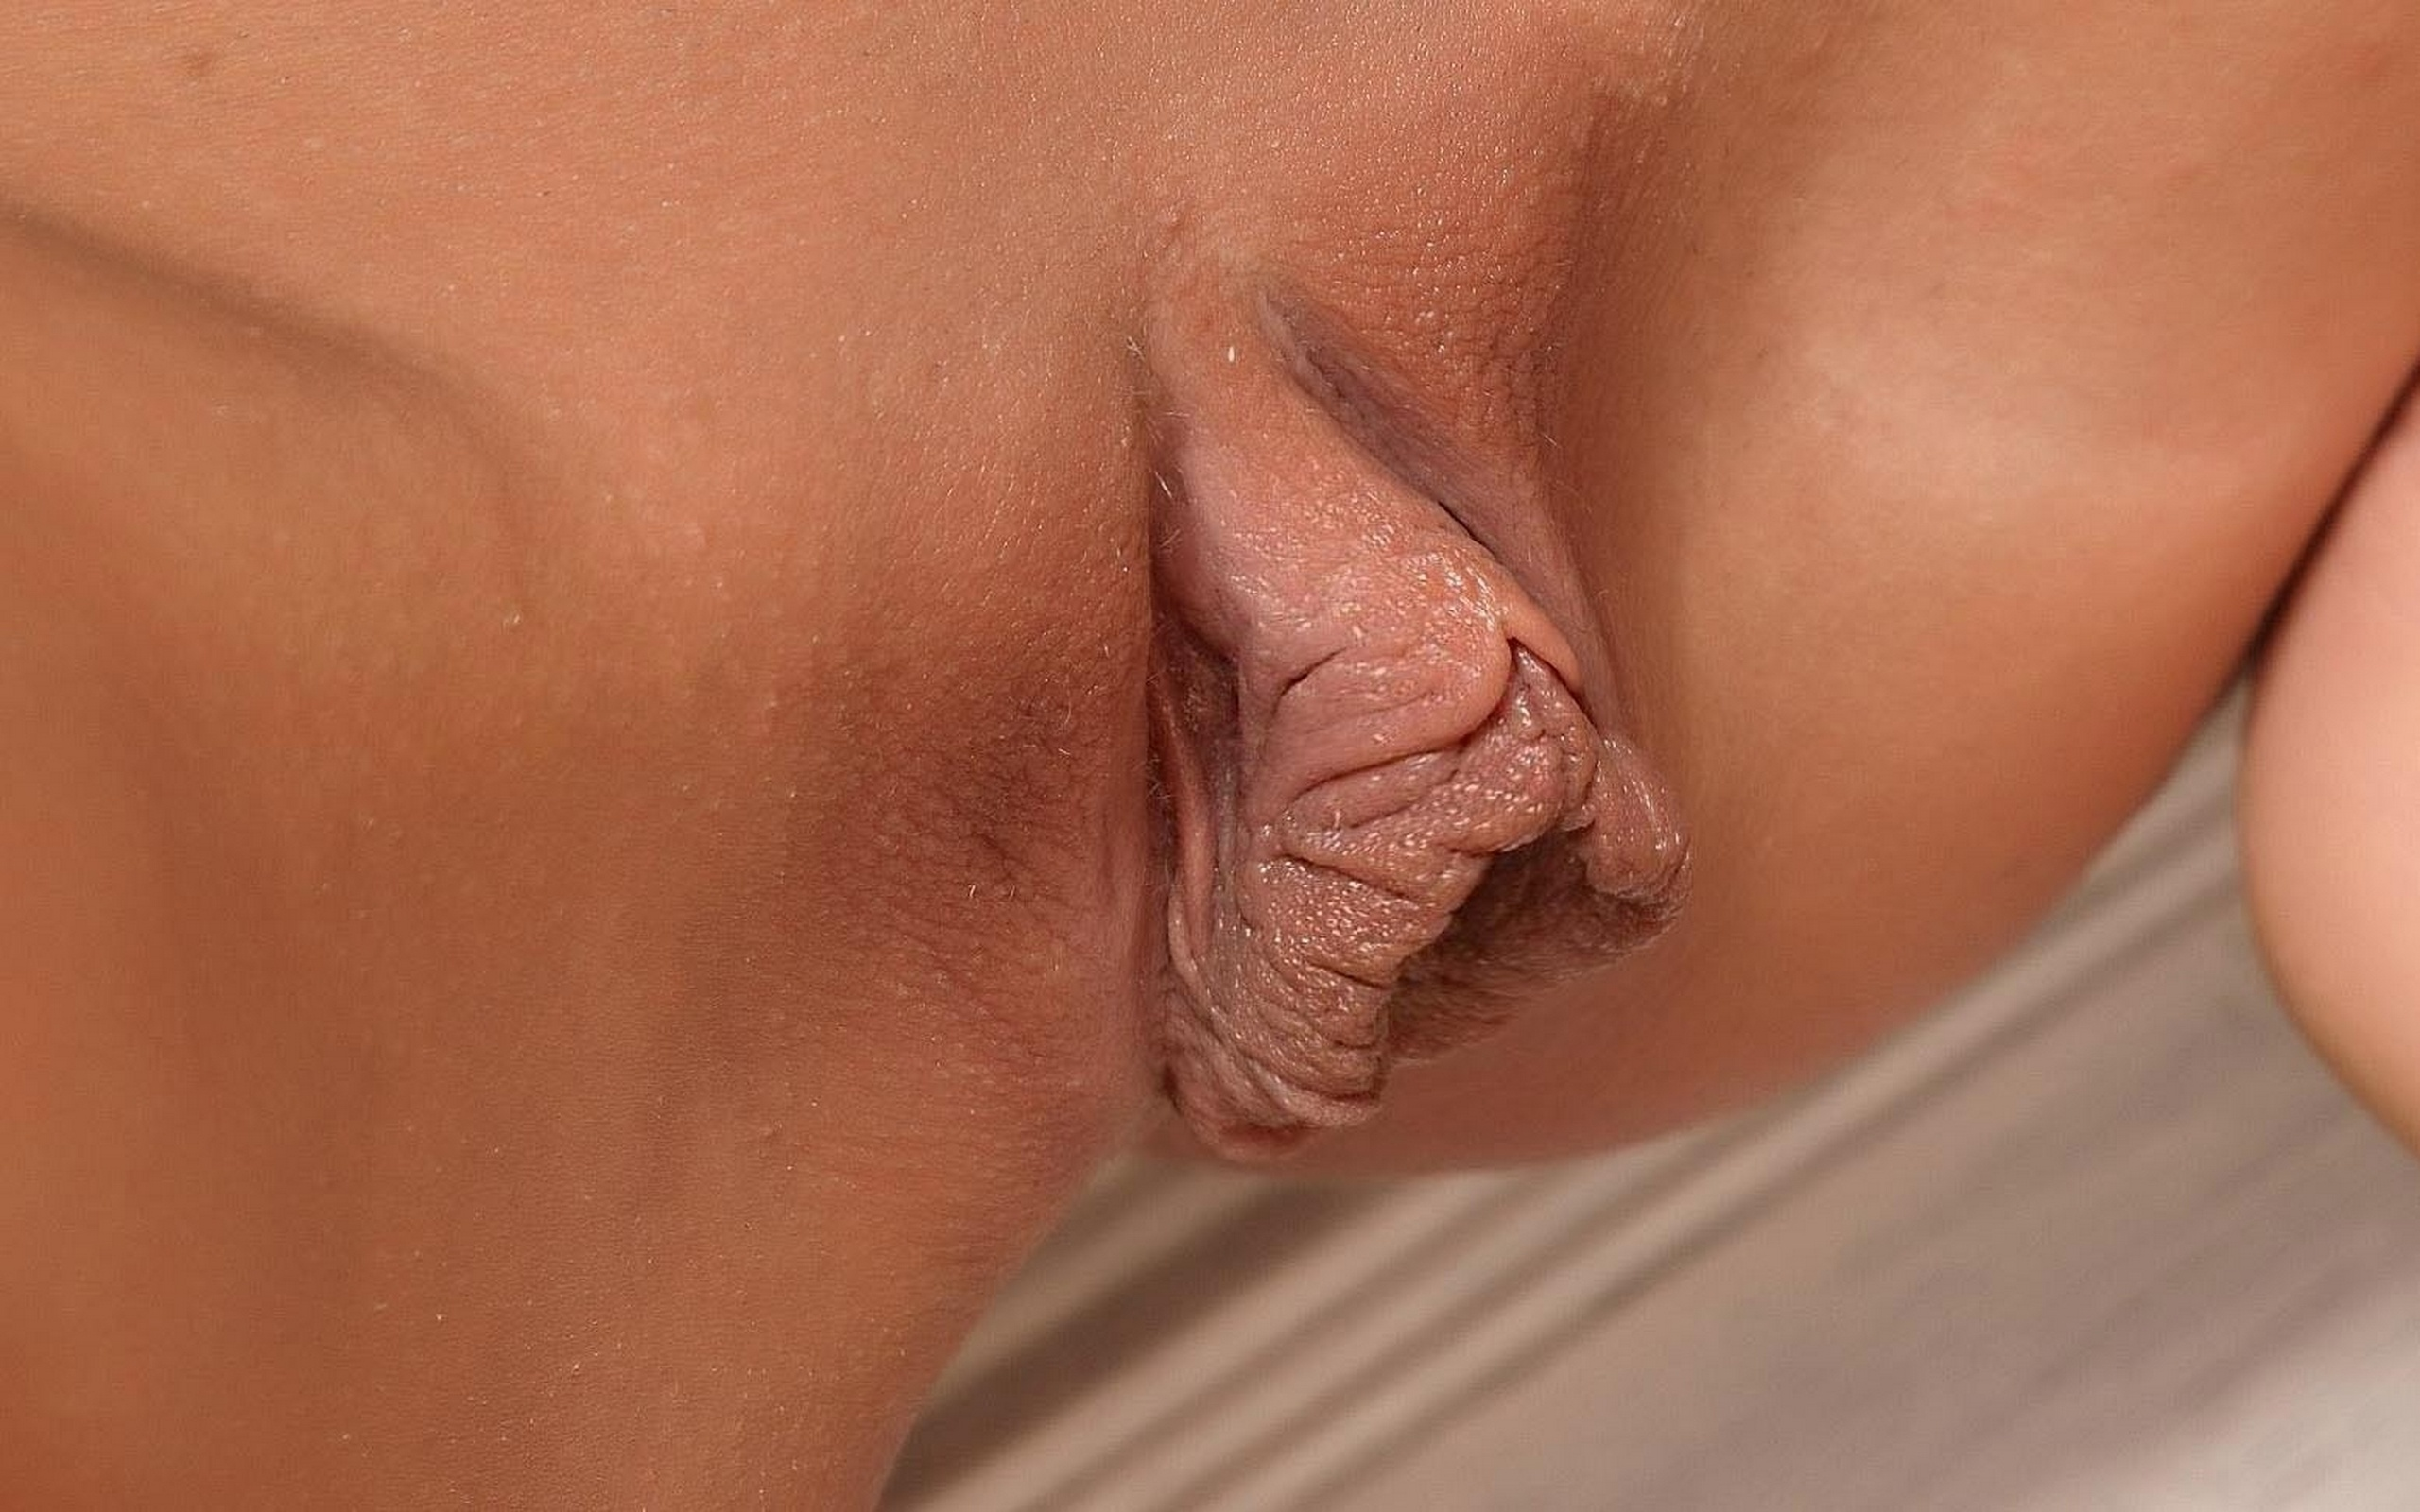 Close up vulva video